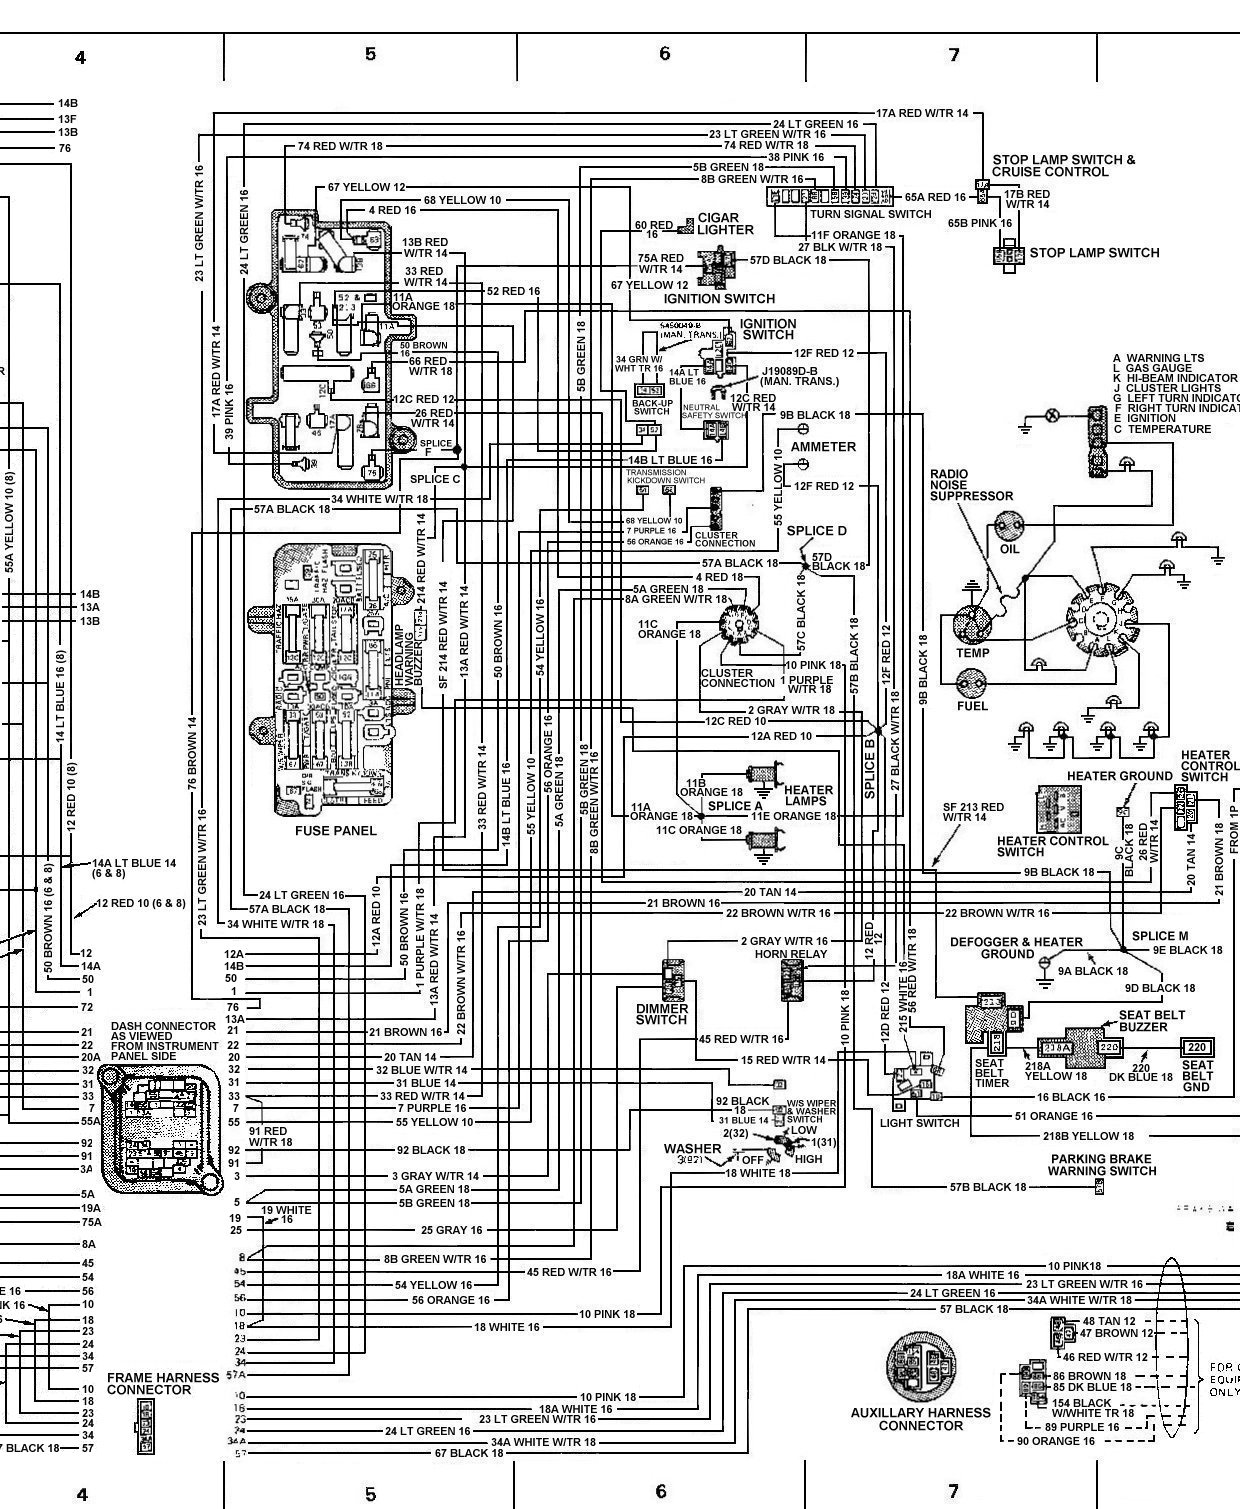 2004 Gmc C7500 Turn Signal Wiring Diagram from image.payloadz.com